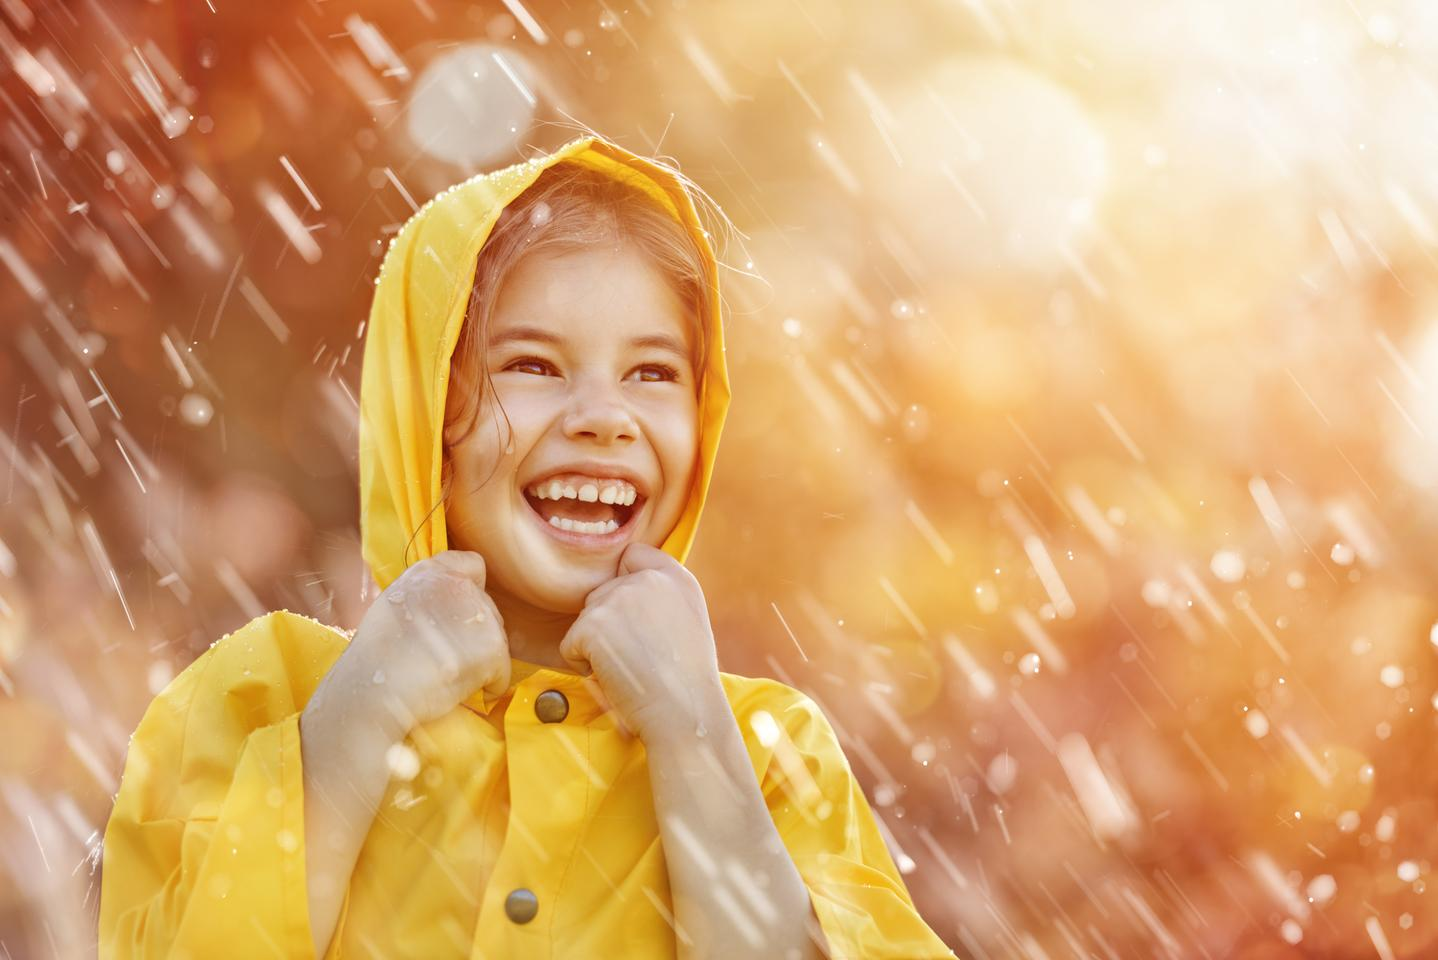 The technology could find use in products such as raincoats, although the potential applications